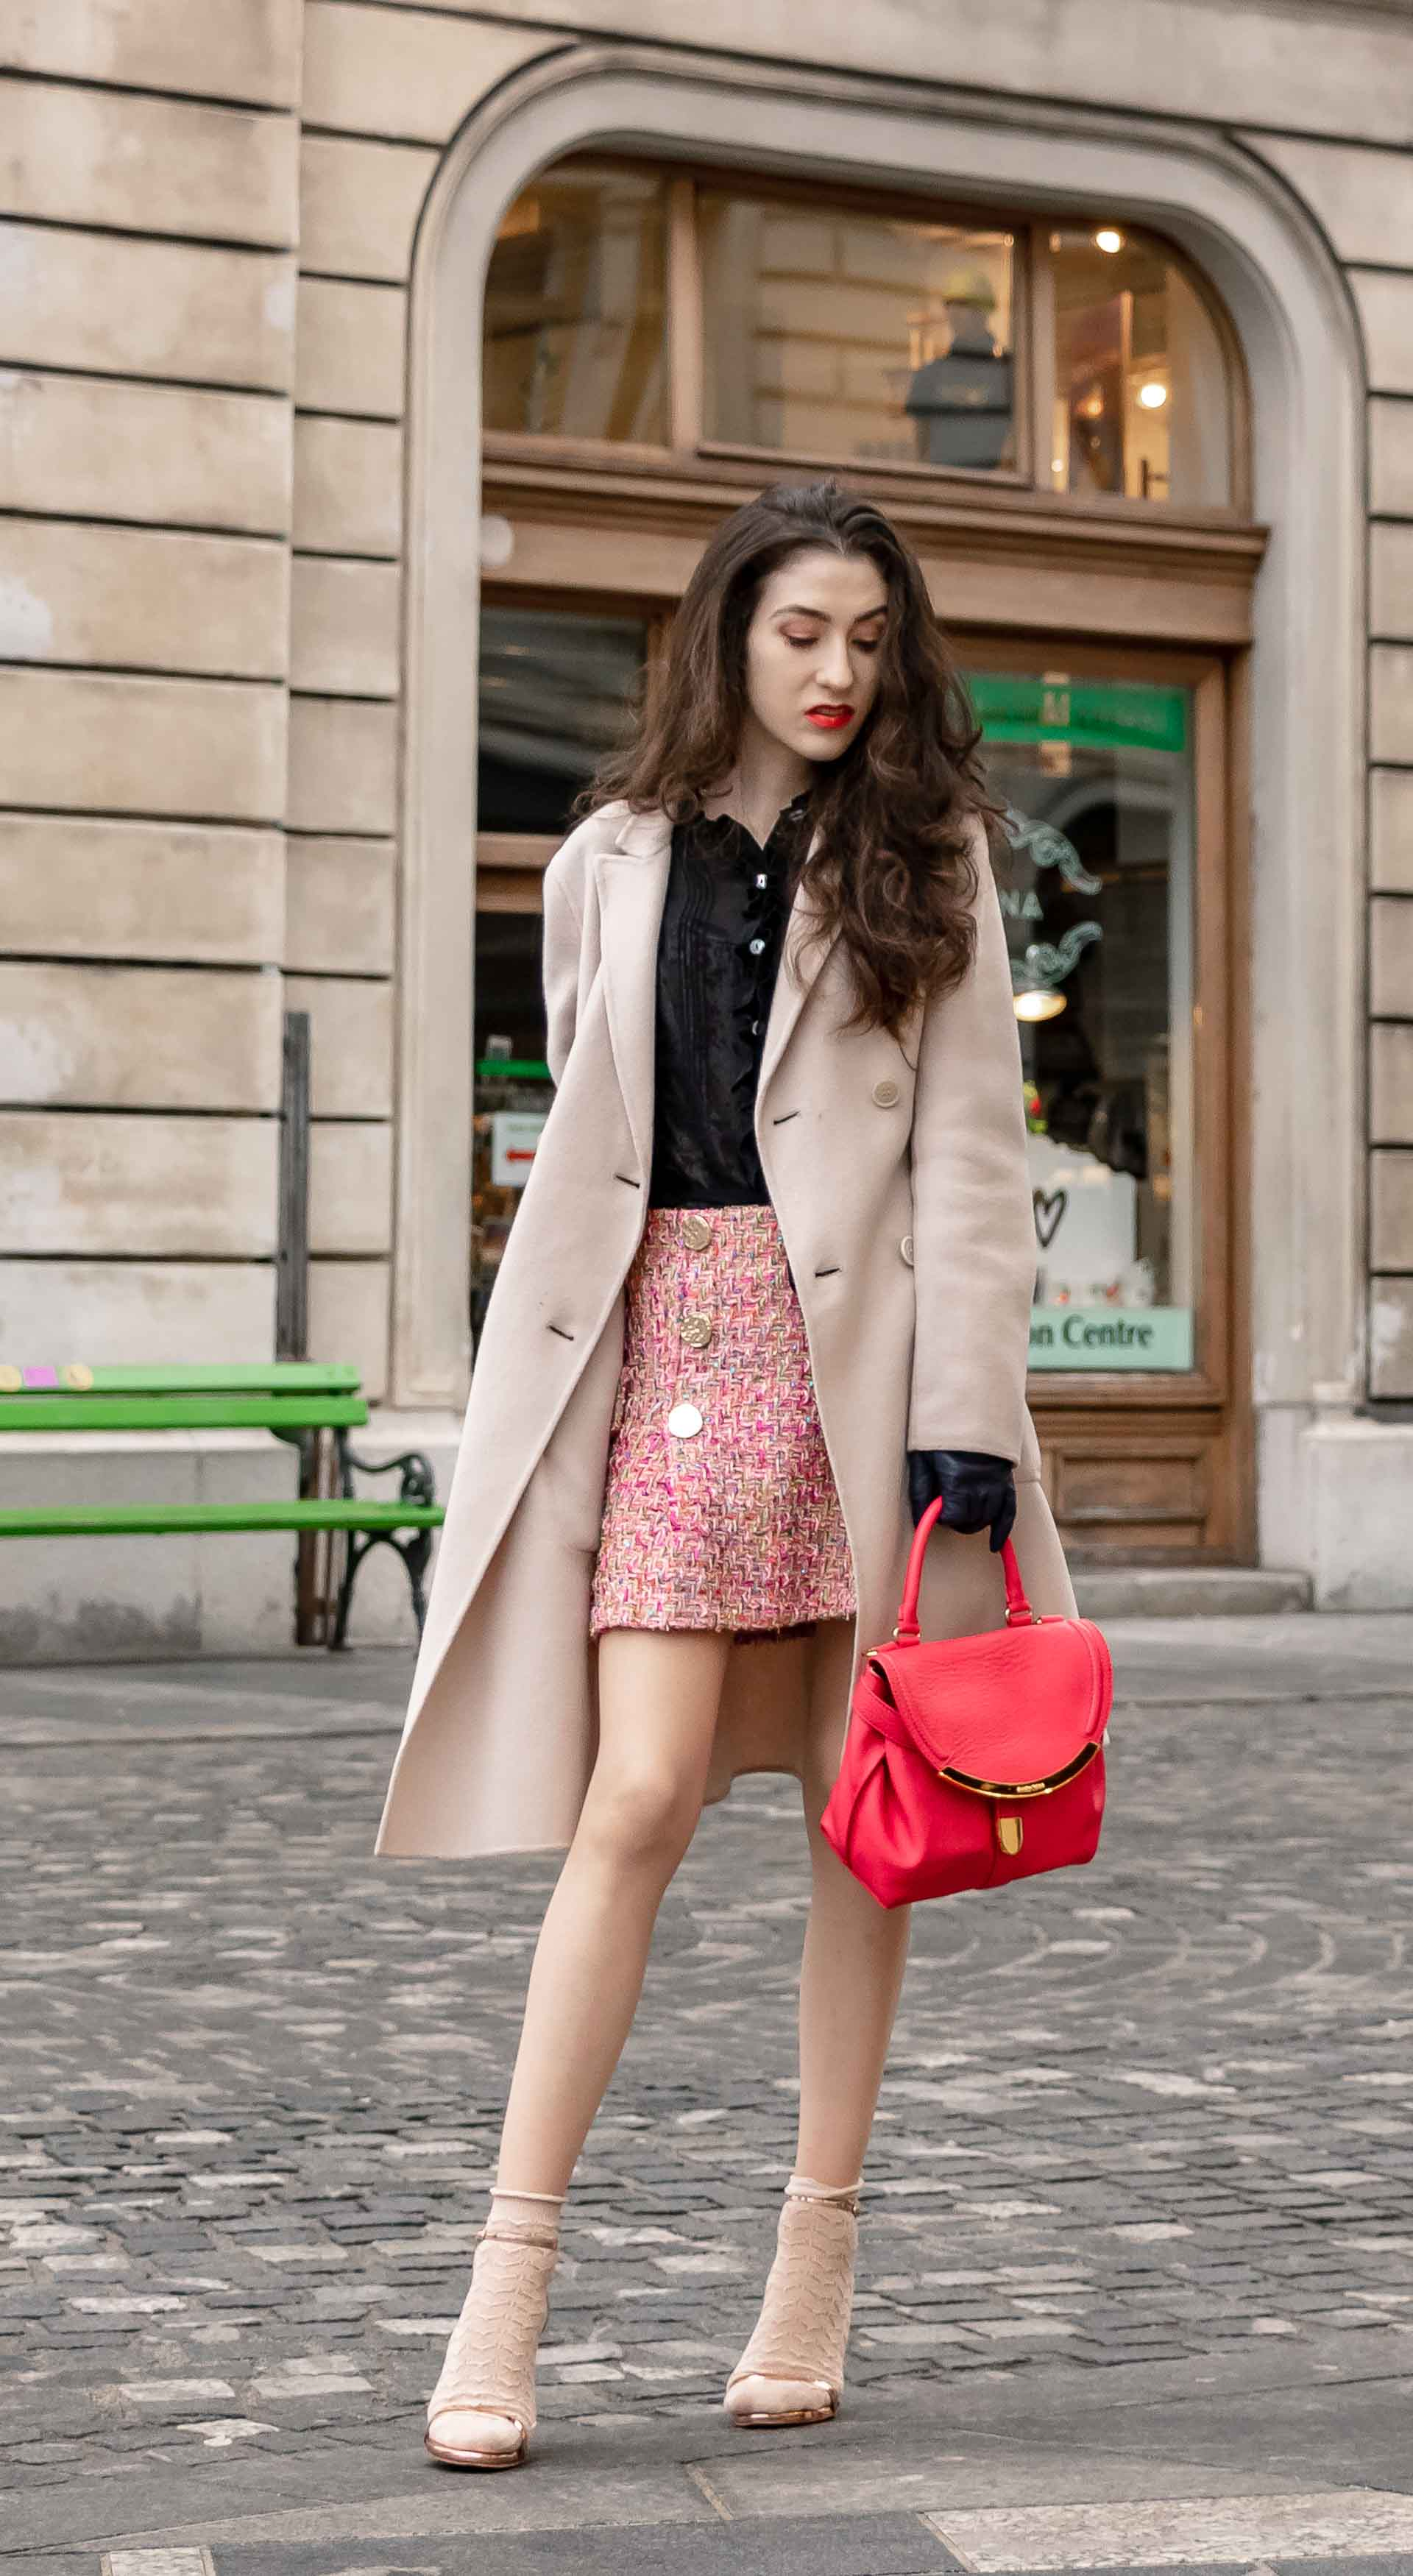 Fashion Blogger Veronika Lipar of Brunette from Wall Street dressed in bronze socks and high shine rose gold Songnudist sandals from Stuart Weitzman, tweed Storets mini skirt, black blouse, off white Weekend Maxmara coat while on the street in Ljubljana